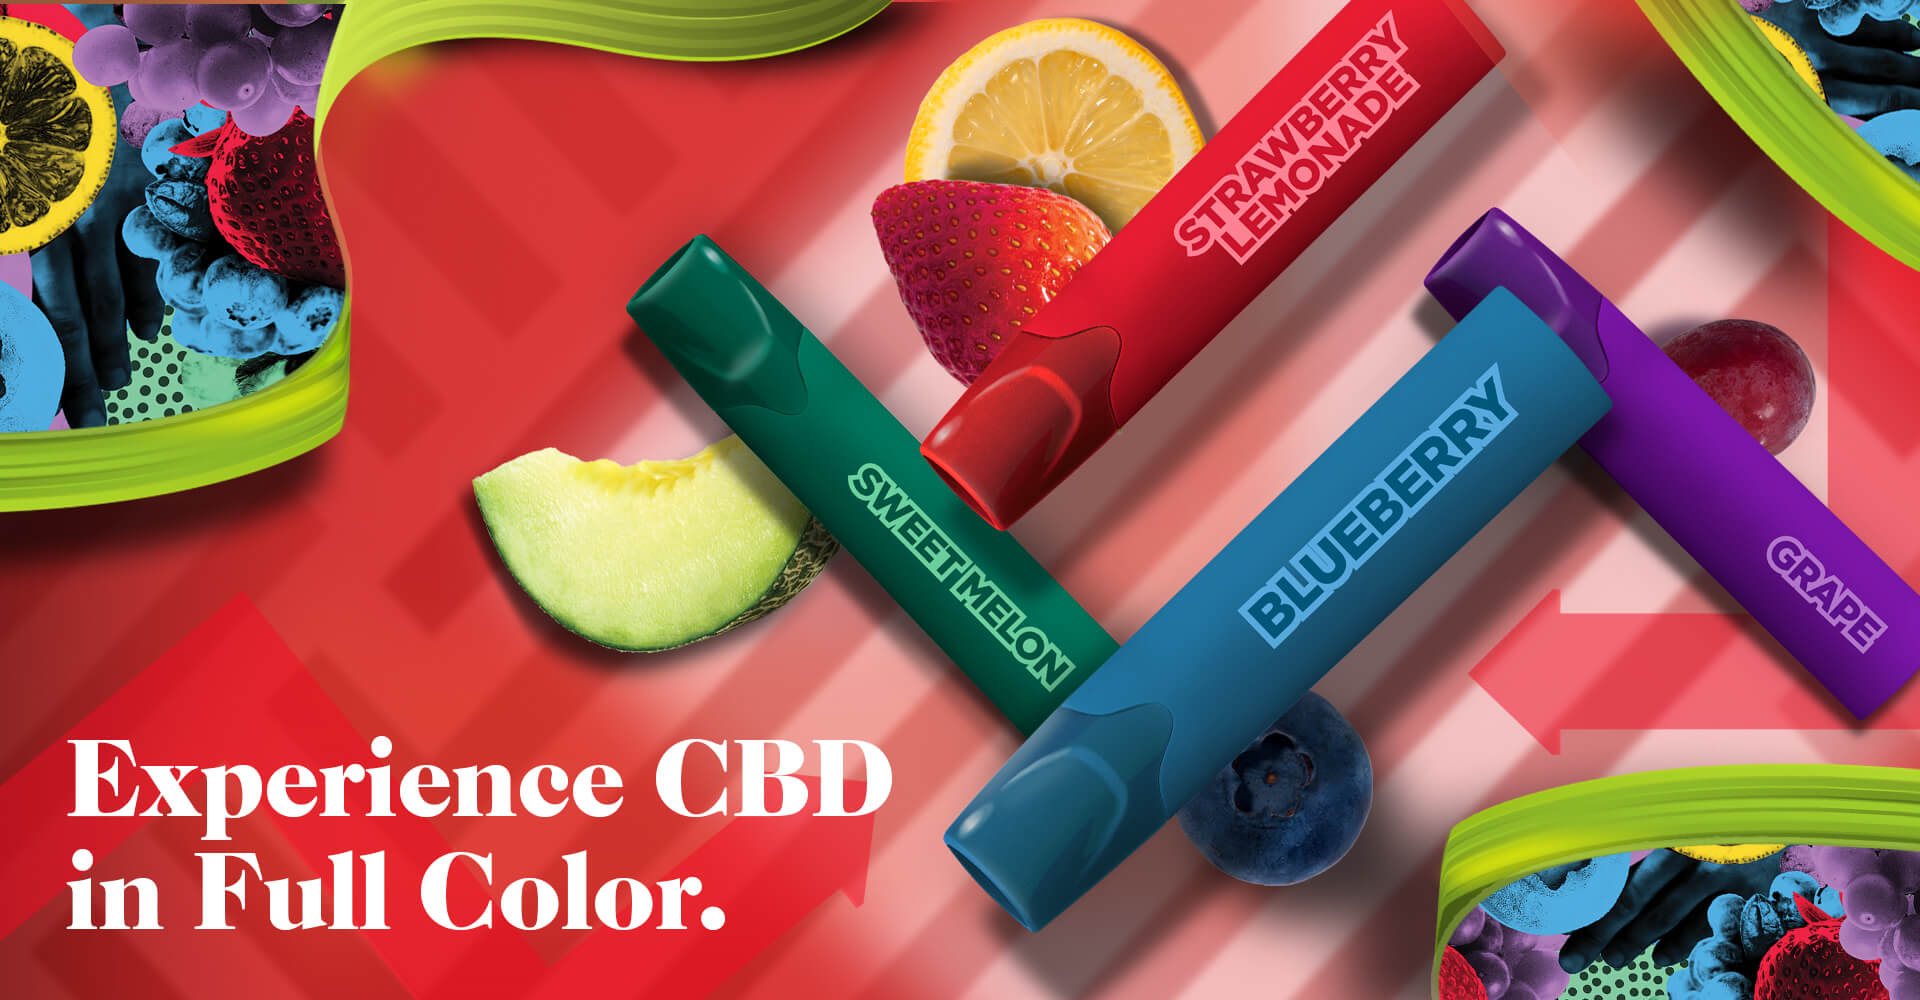 Experience CBD in Full Color